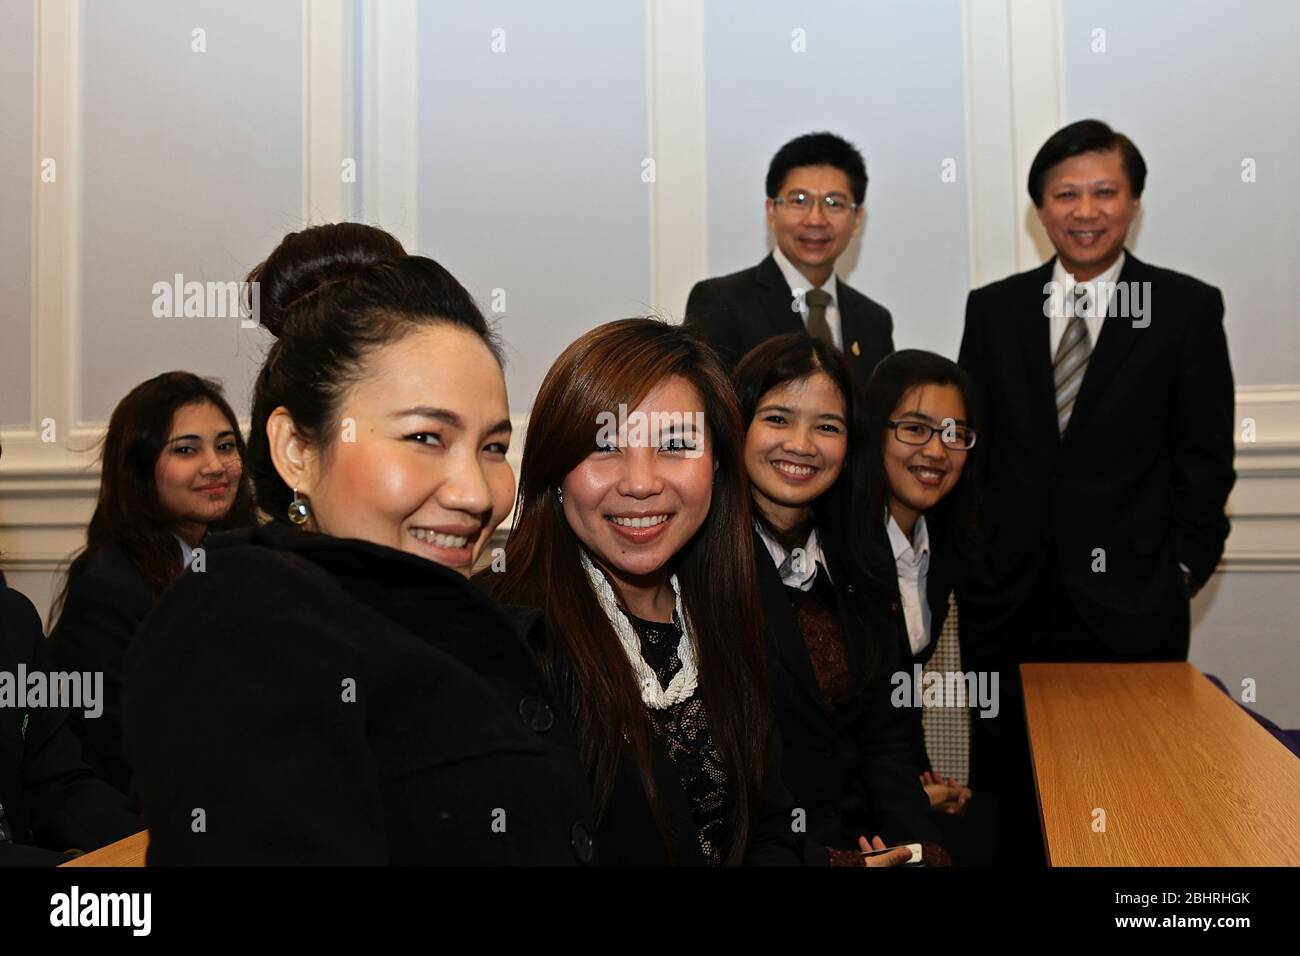 During November 2012 . Her Excellency Ms .Yingluck Shinawatra , Prime Minister of the Kingdom of Thailand , paid an official visit to the United Kigdom .invited by PM David Cameron . the Thai PM was accompanied by key members of the Thai Cabinet . On the 13 November the Thai PM had an audience with the Queen . On the 14 th November the two PM exchanged views on various matters of mutual interest , bilaterally ,regionally and globally. To the end of this meeting , both leaders have agreed to the establishment of a Strategic Dialogue and agreed a new mechanism beneficial for both countries .. Stock Photo